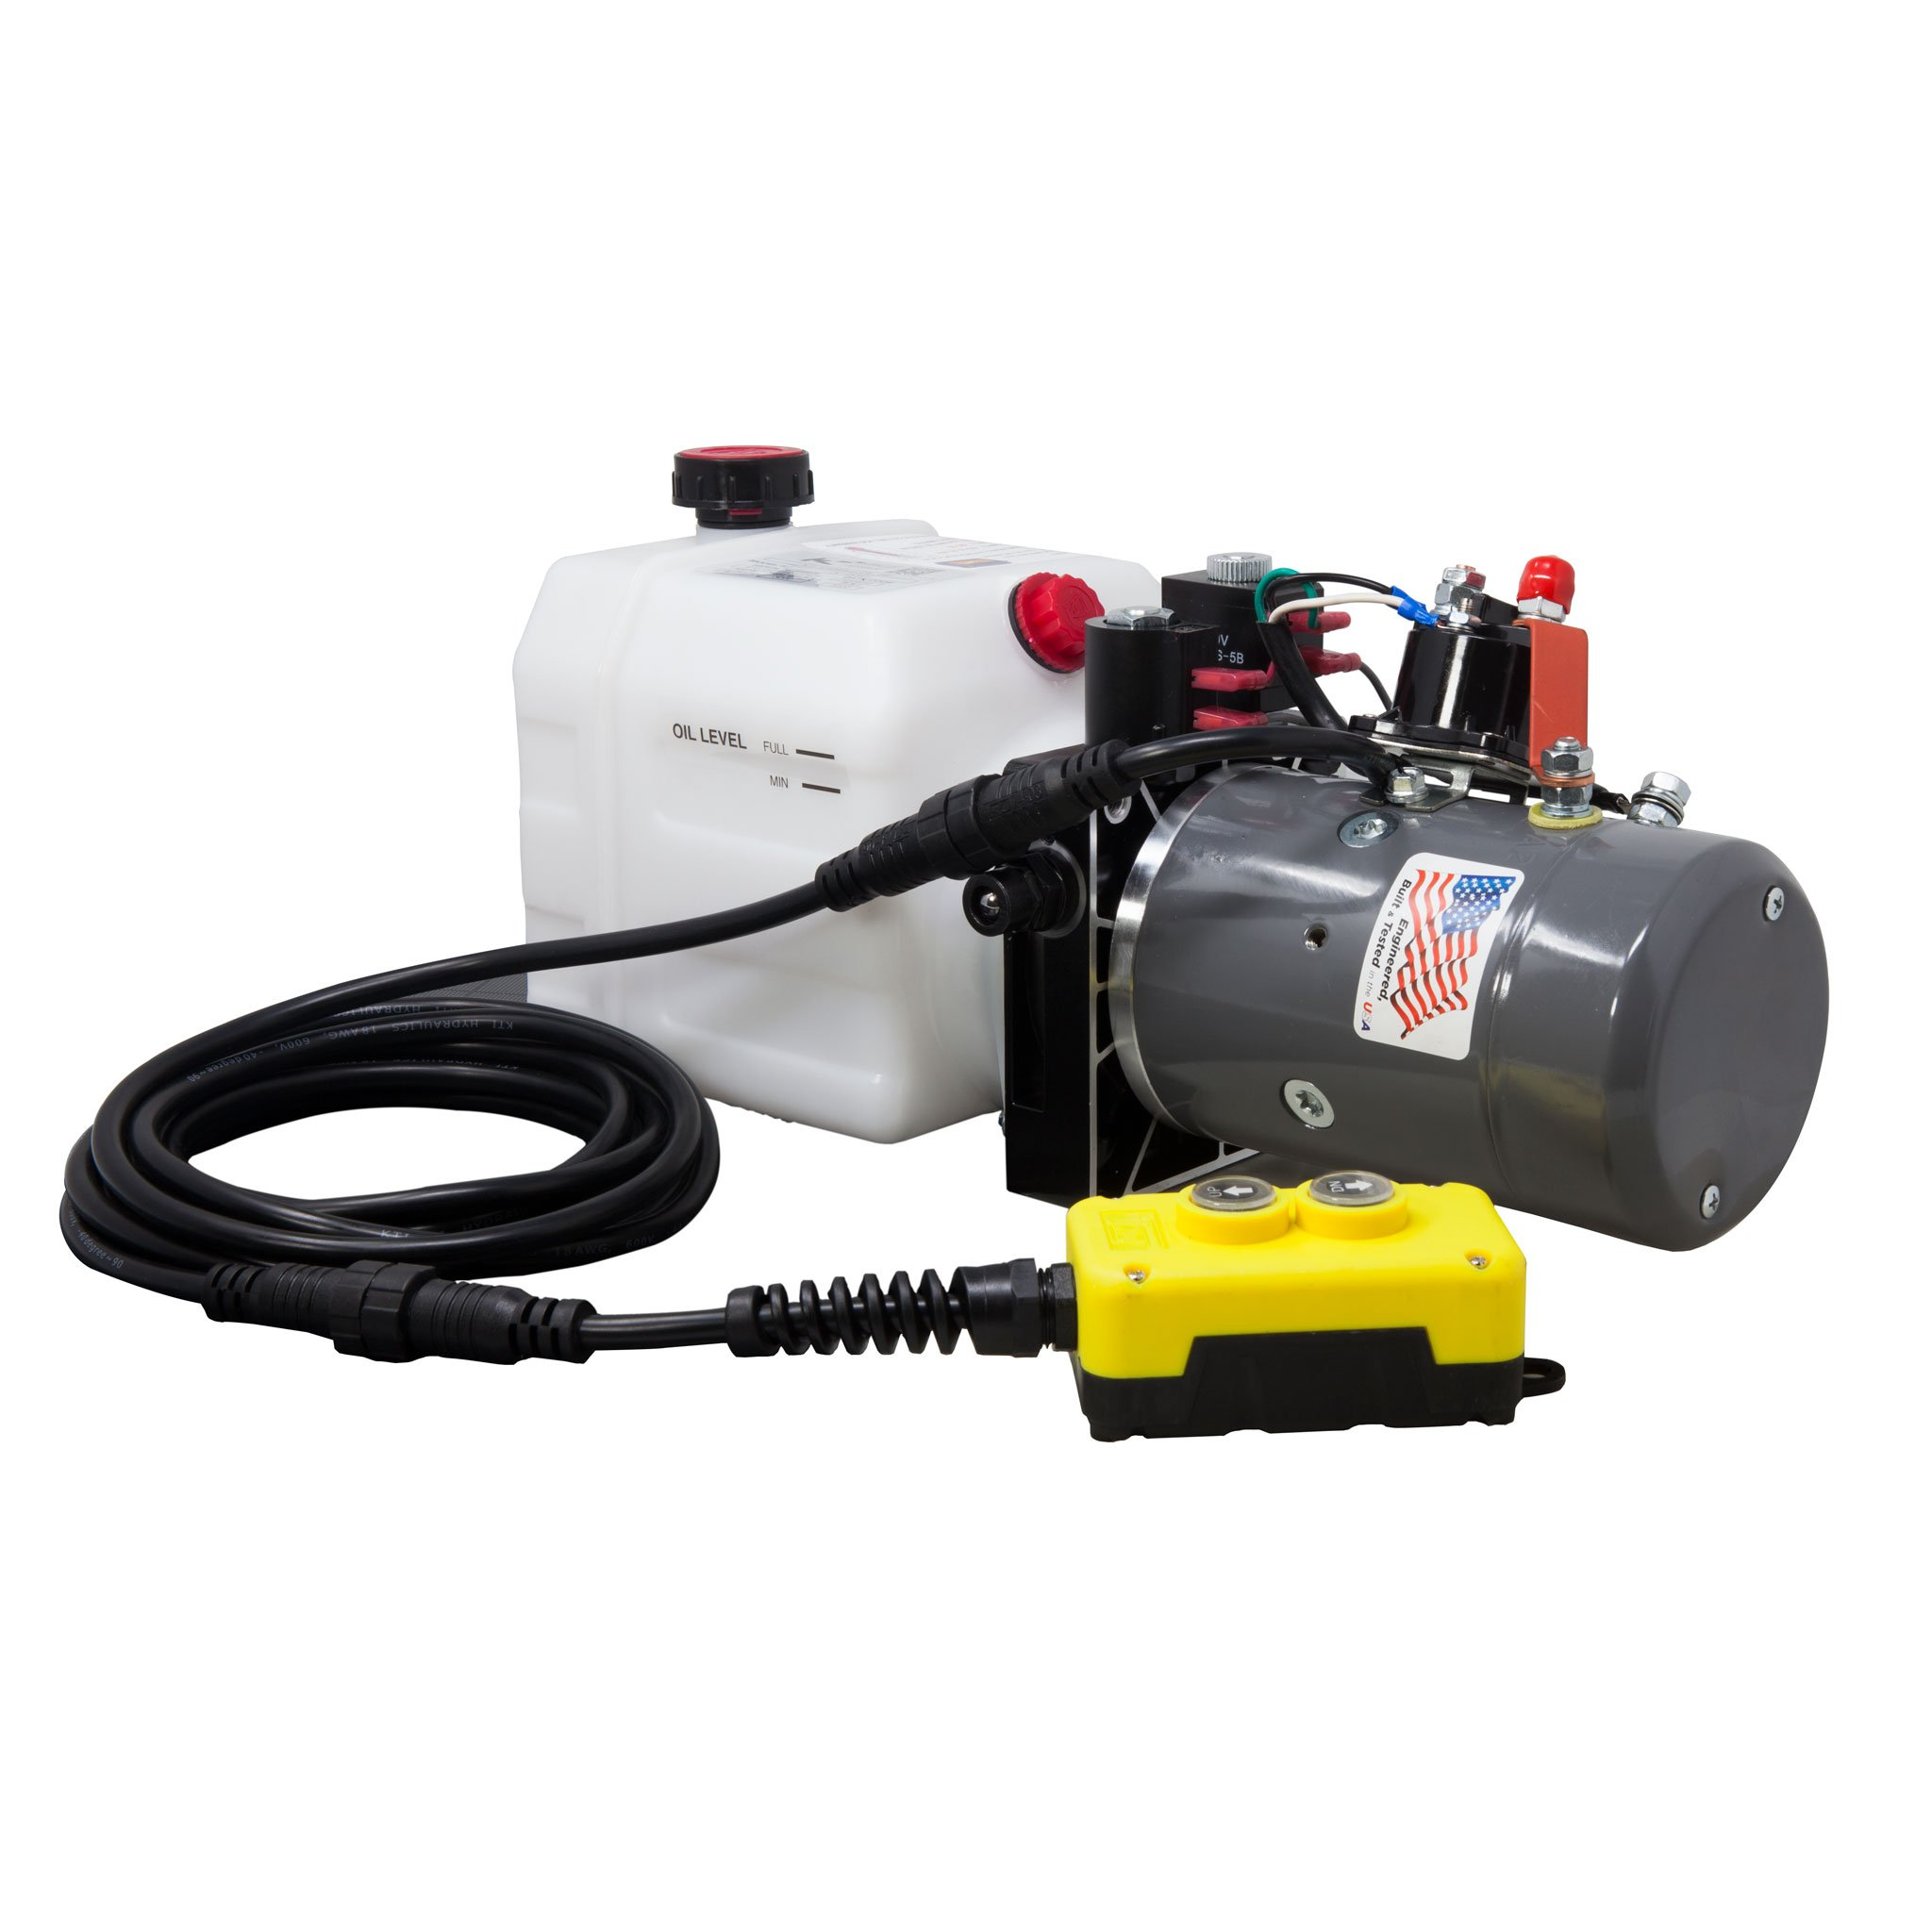 KTI Double Acting 12V Hydraulic Pump - 3 Quart